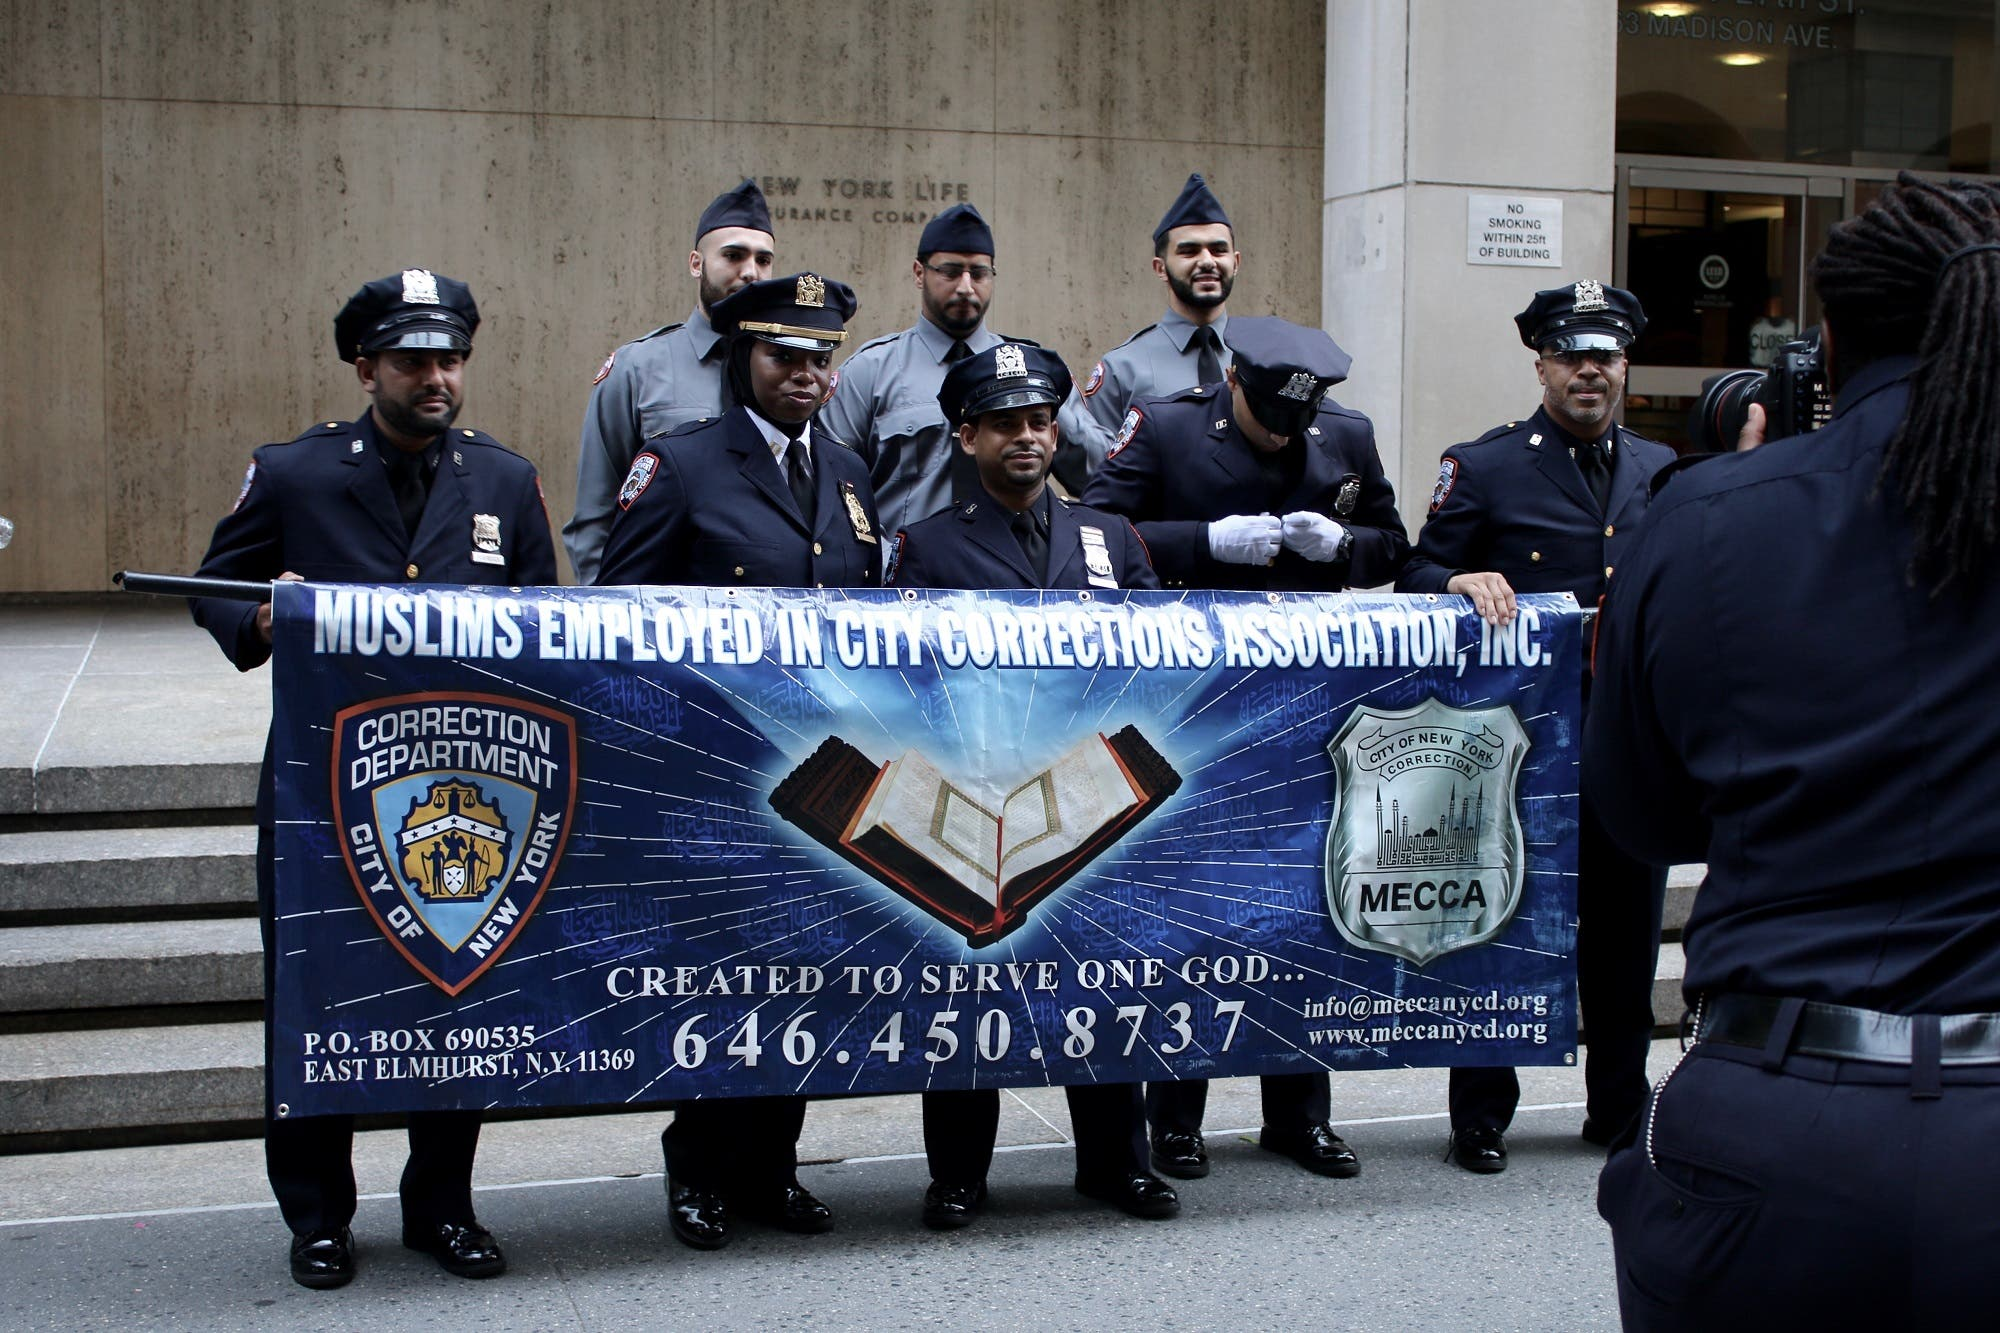 Muslims employed in City Corrections Association Inc was also represented. (Supplied)